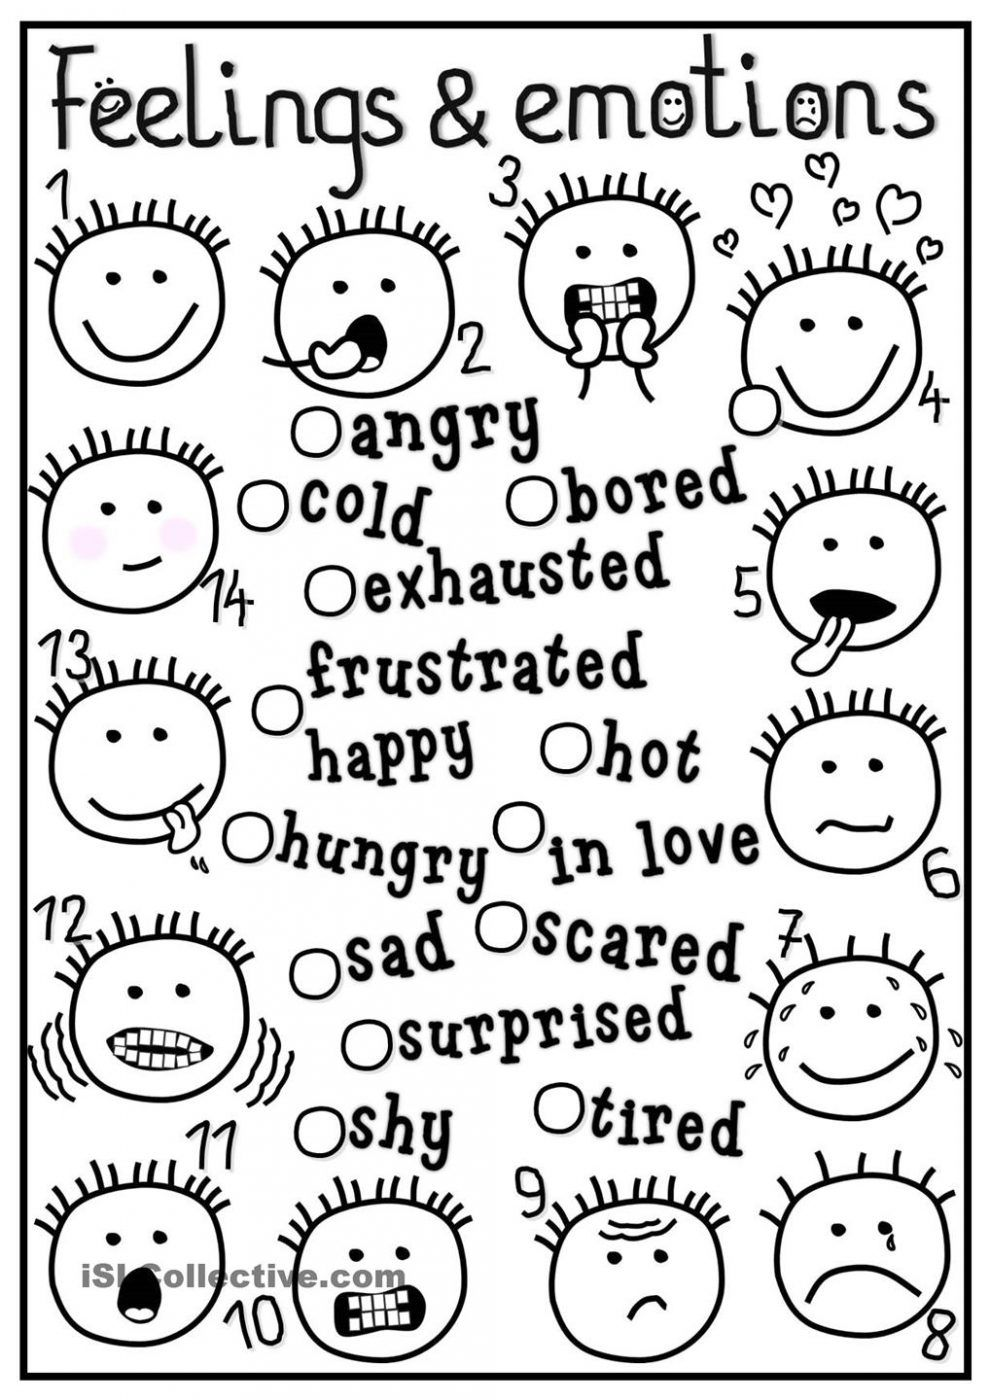 emotions coloring pages printable coloring page emotional balloons coloring emotions pages